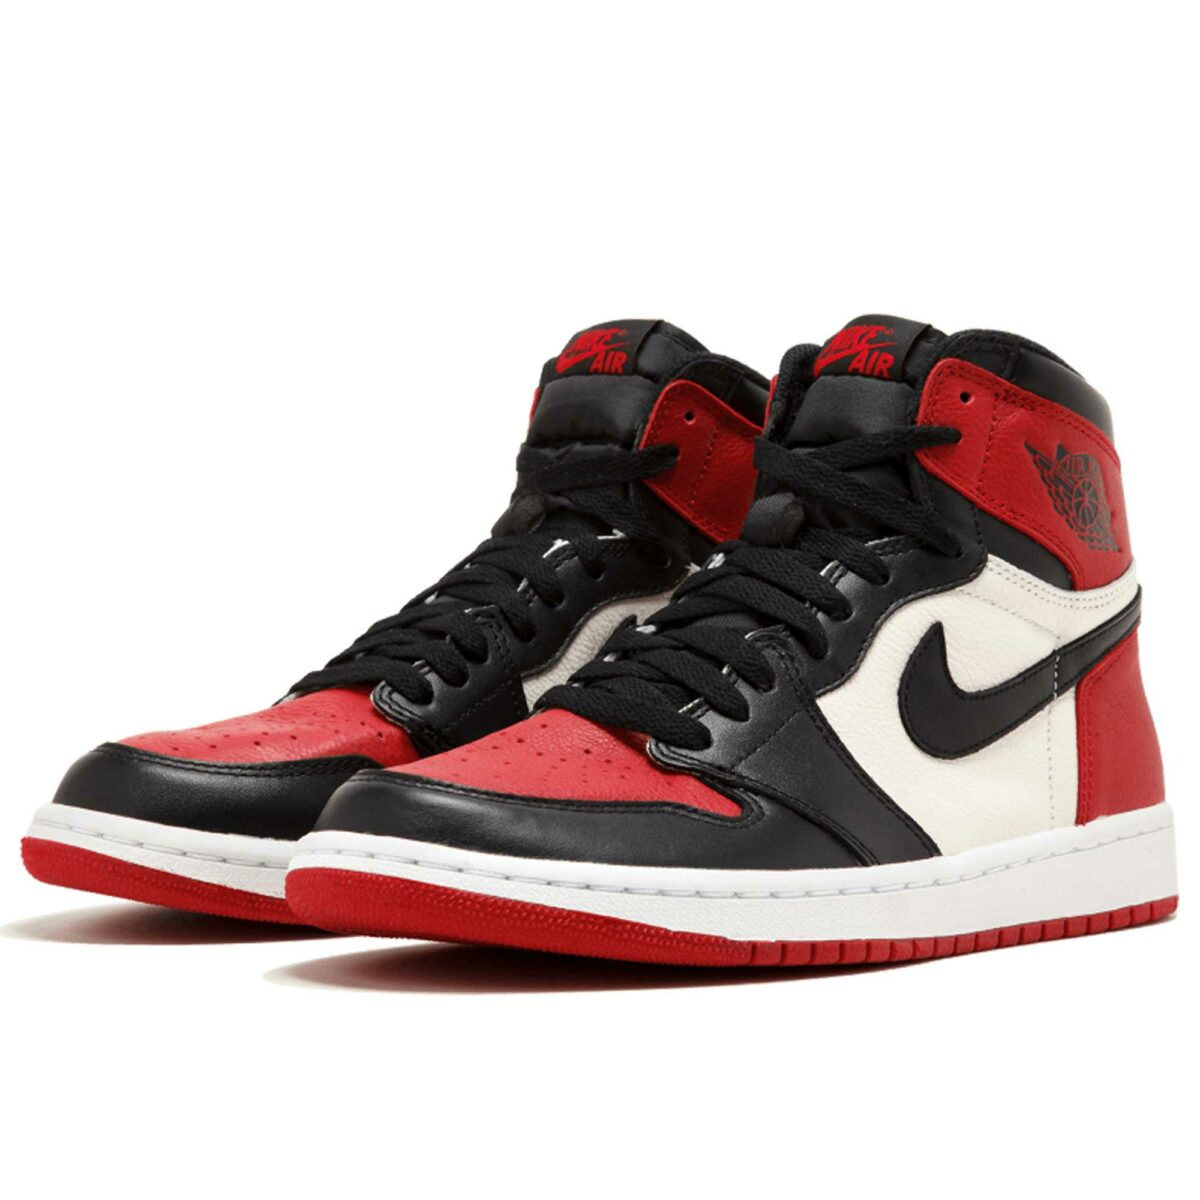 nike air Jordan 1 retro high bred toe 55088_610 купить